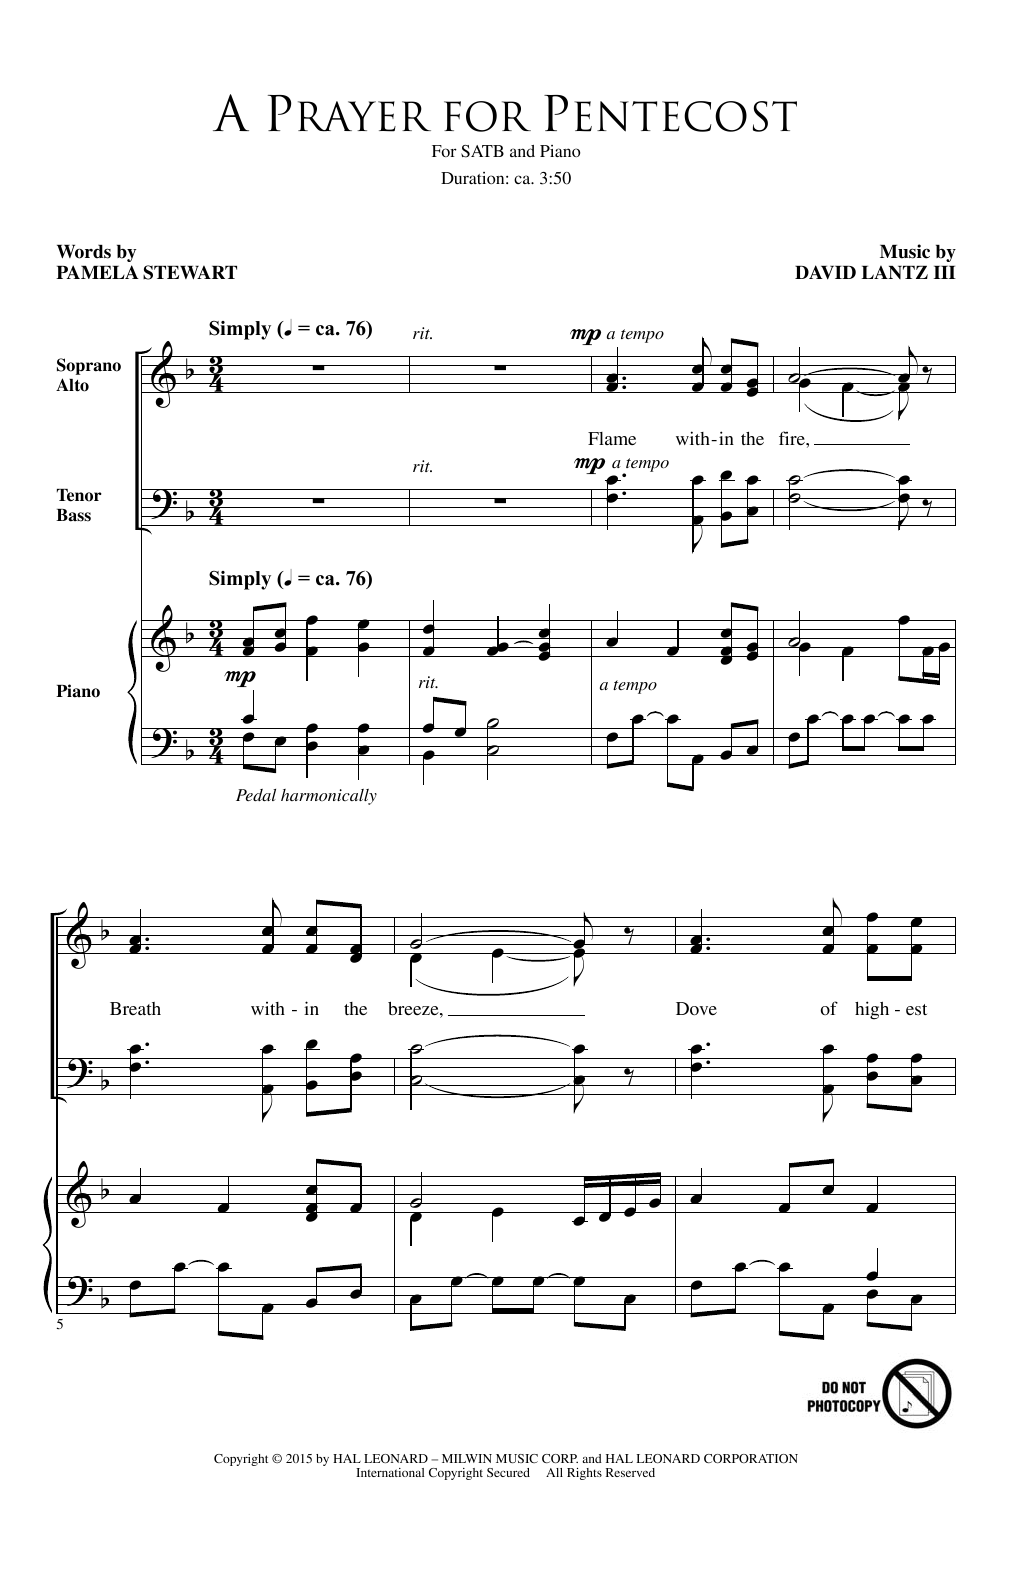 Partition chorale A Prayer For Pentecost de David Lantz III - SATB